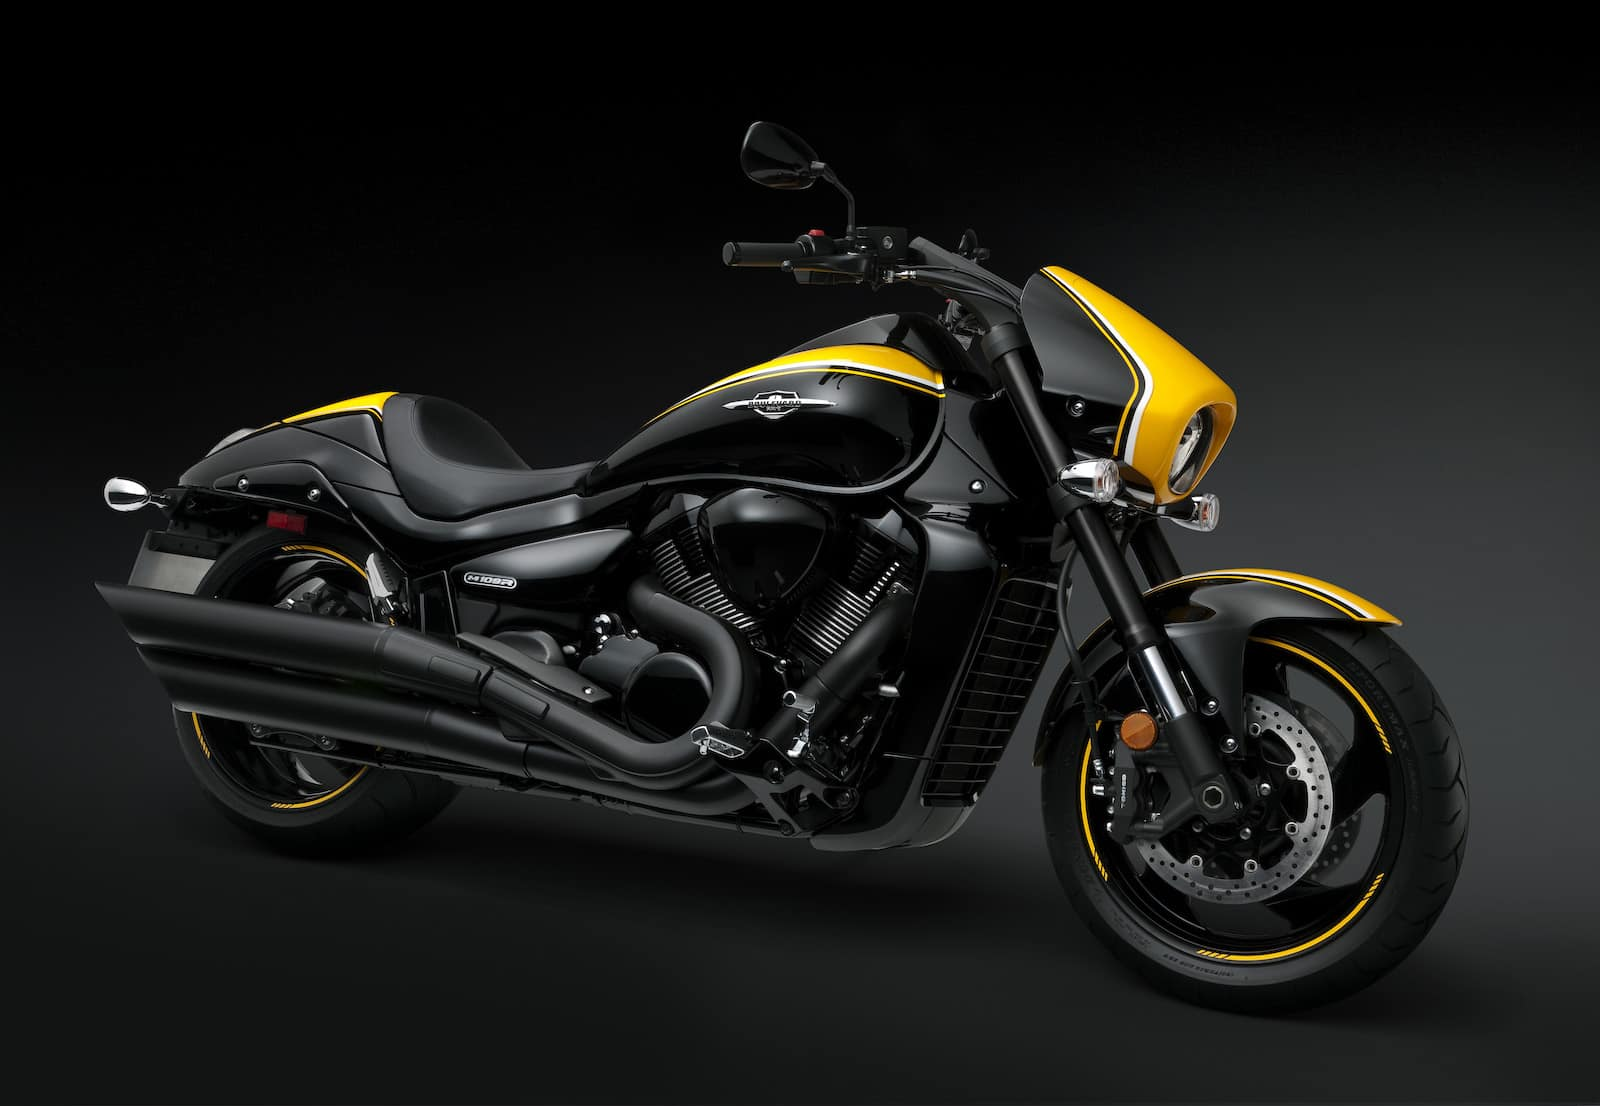 The Suzuki M109R Black - one of the best-looking power cruisers of 2019